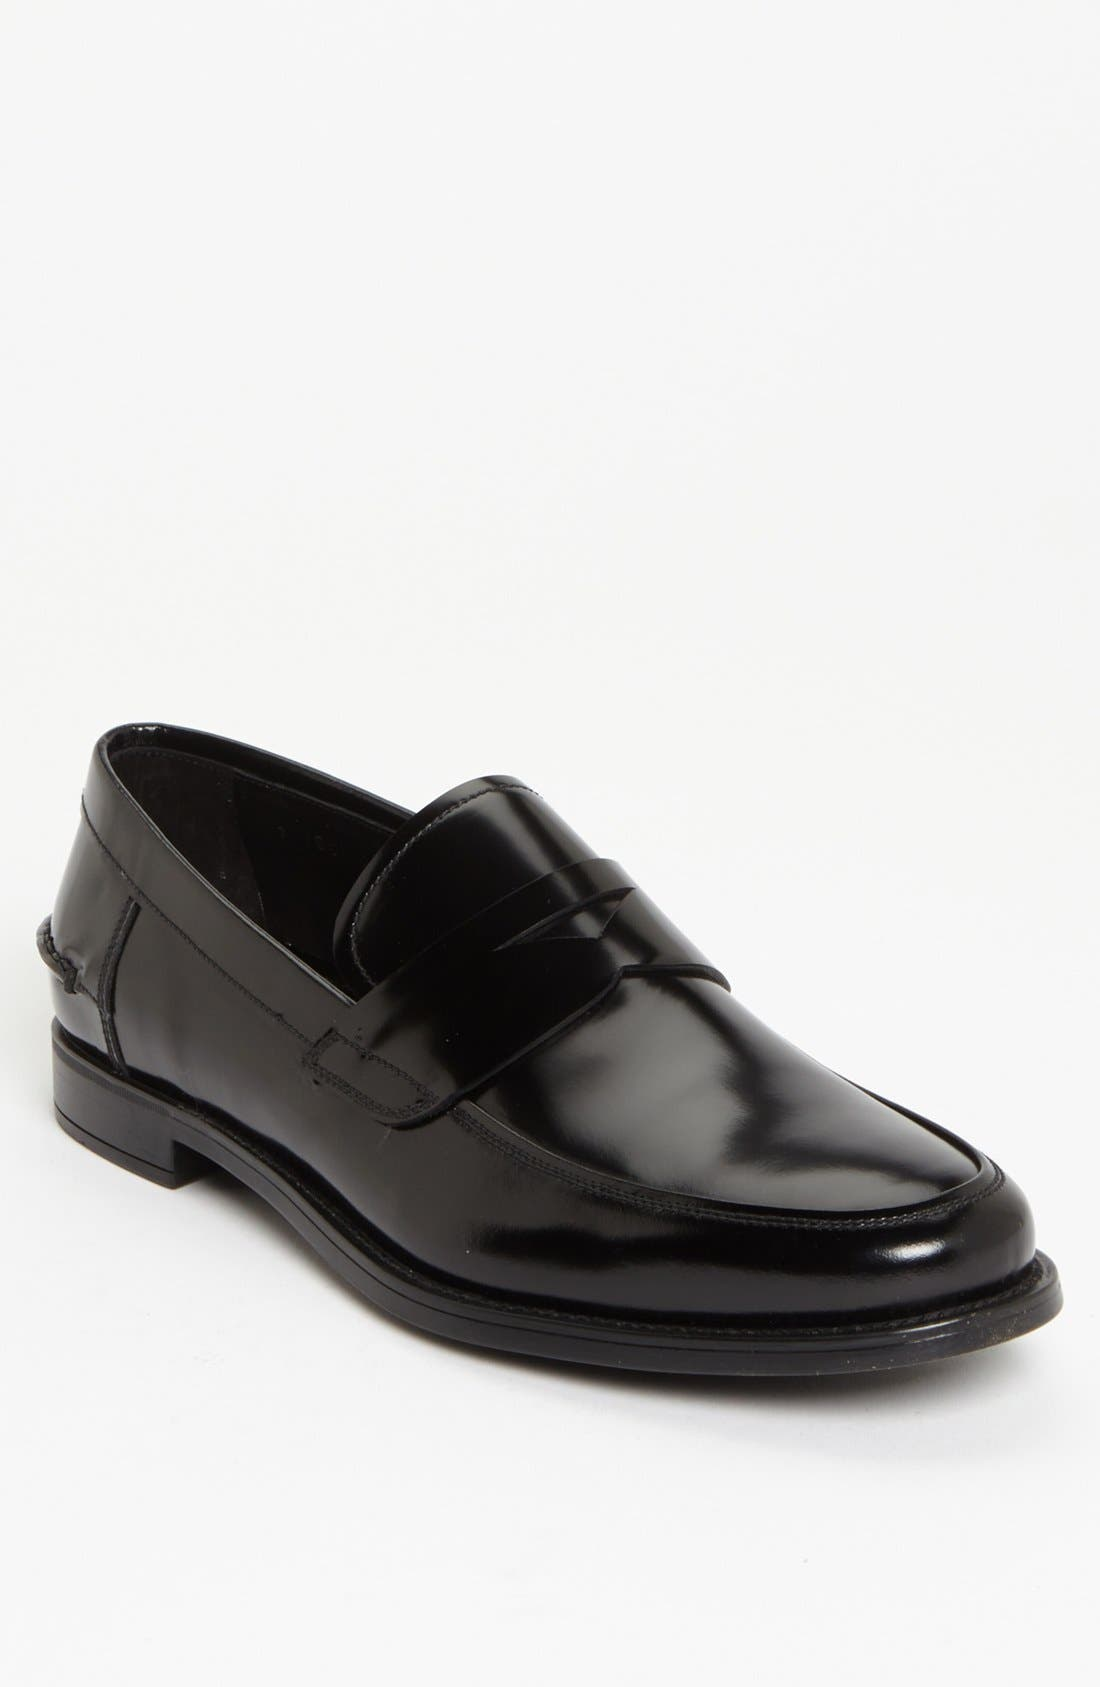 Main Image - Prada Penny Loafer